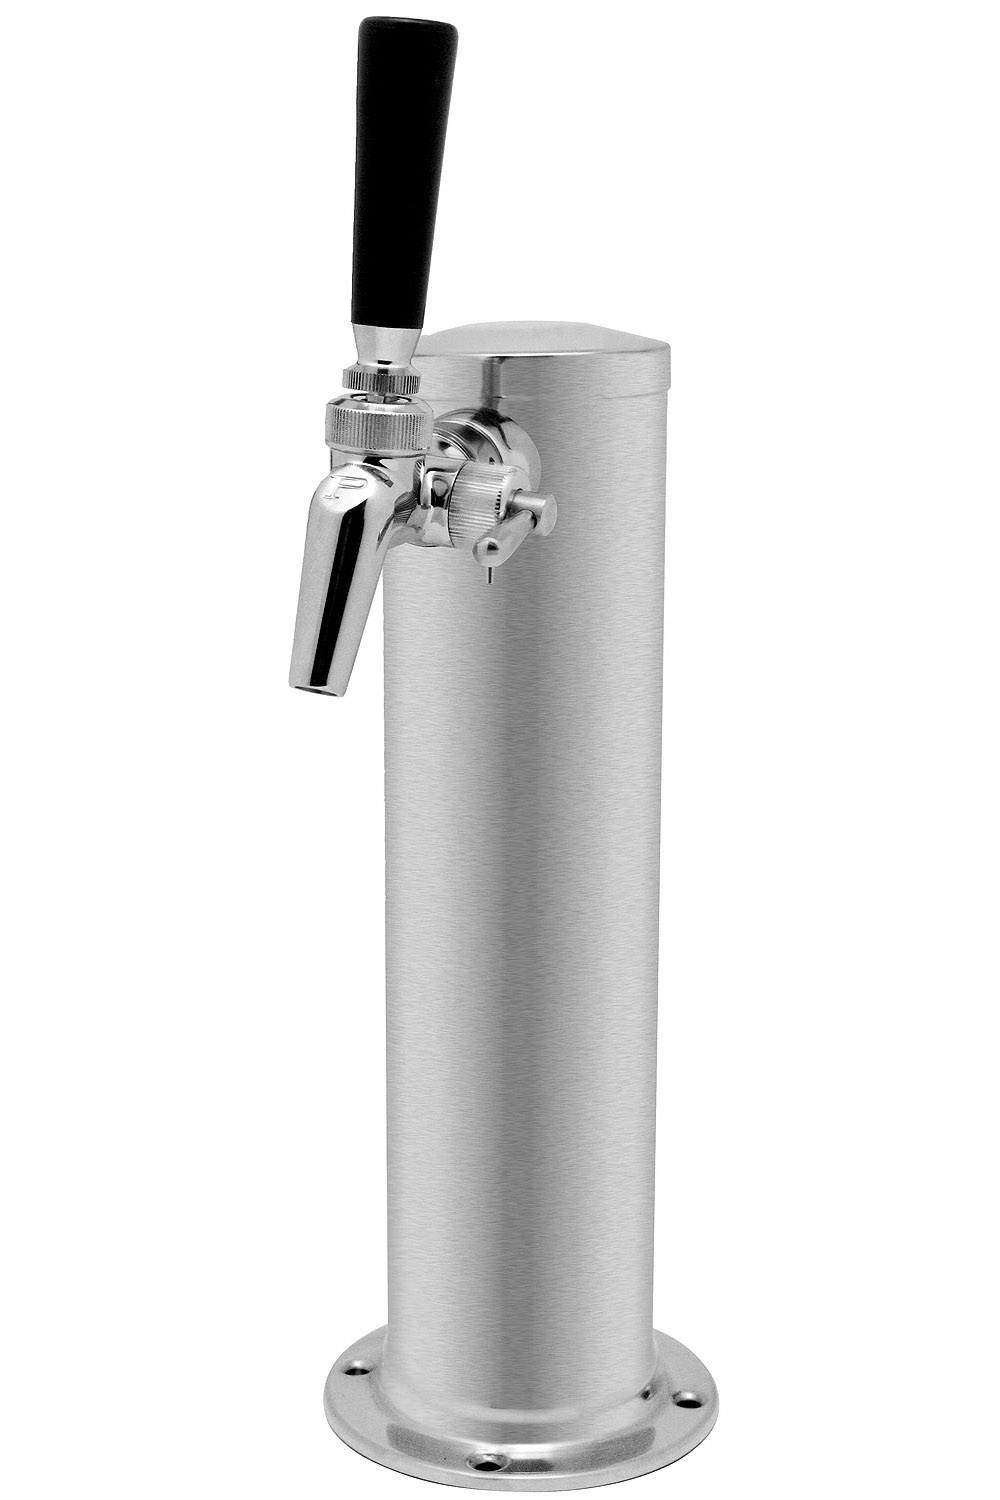 Kegco 1ft650ss Brush Single Faucet Brushed Stainless Steel